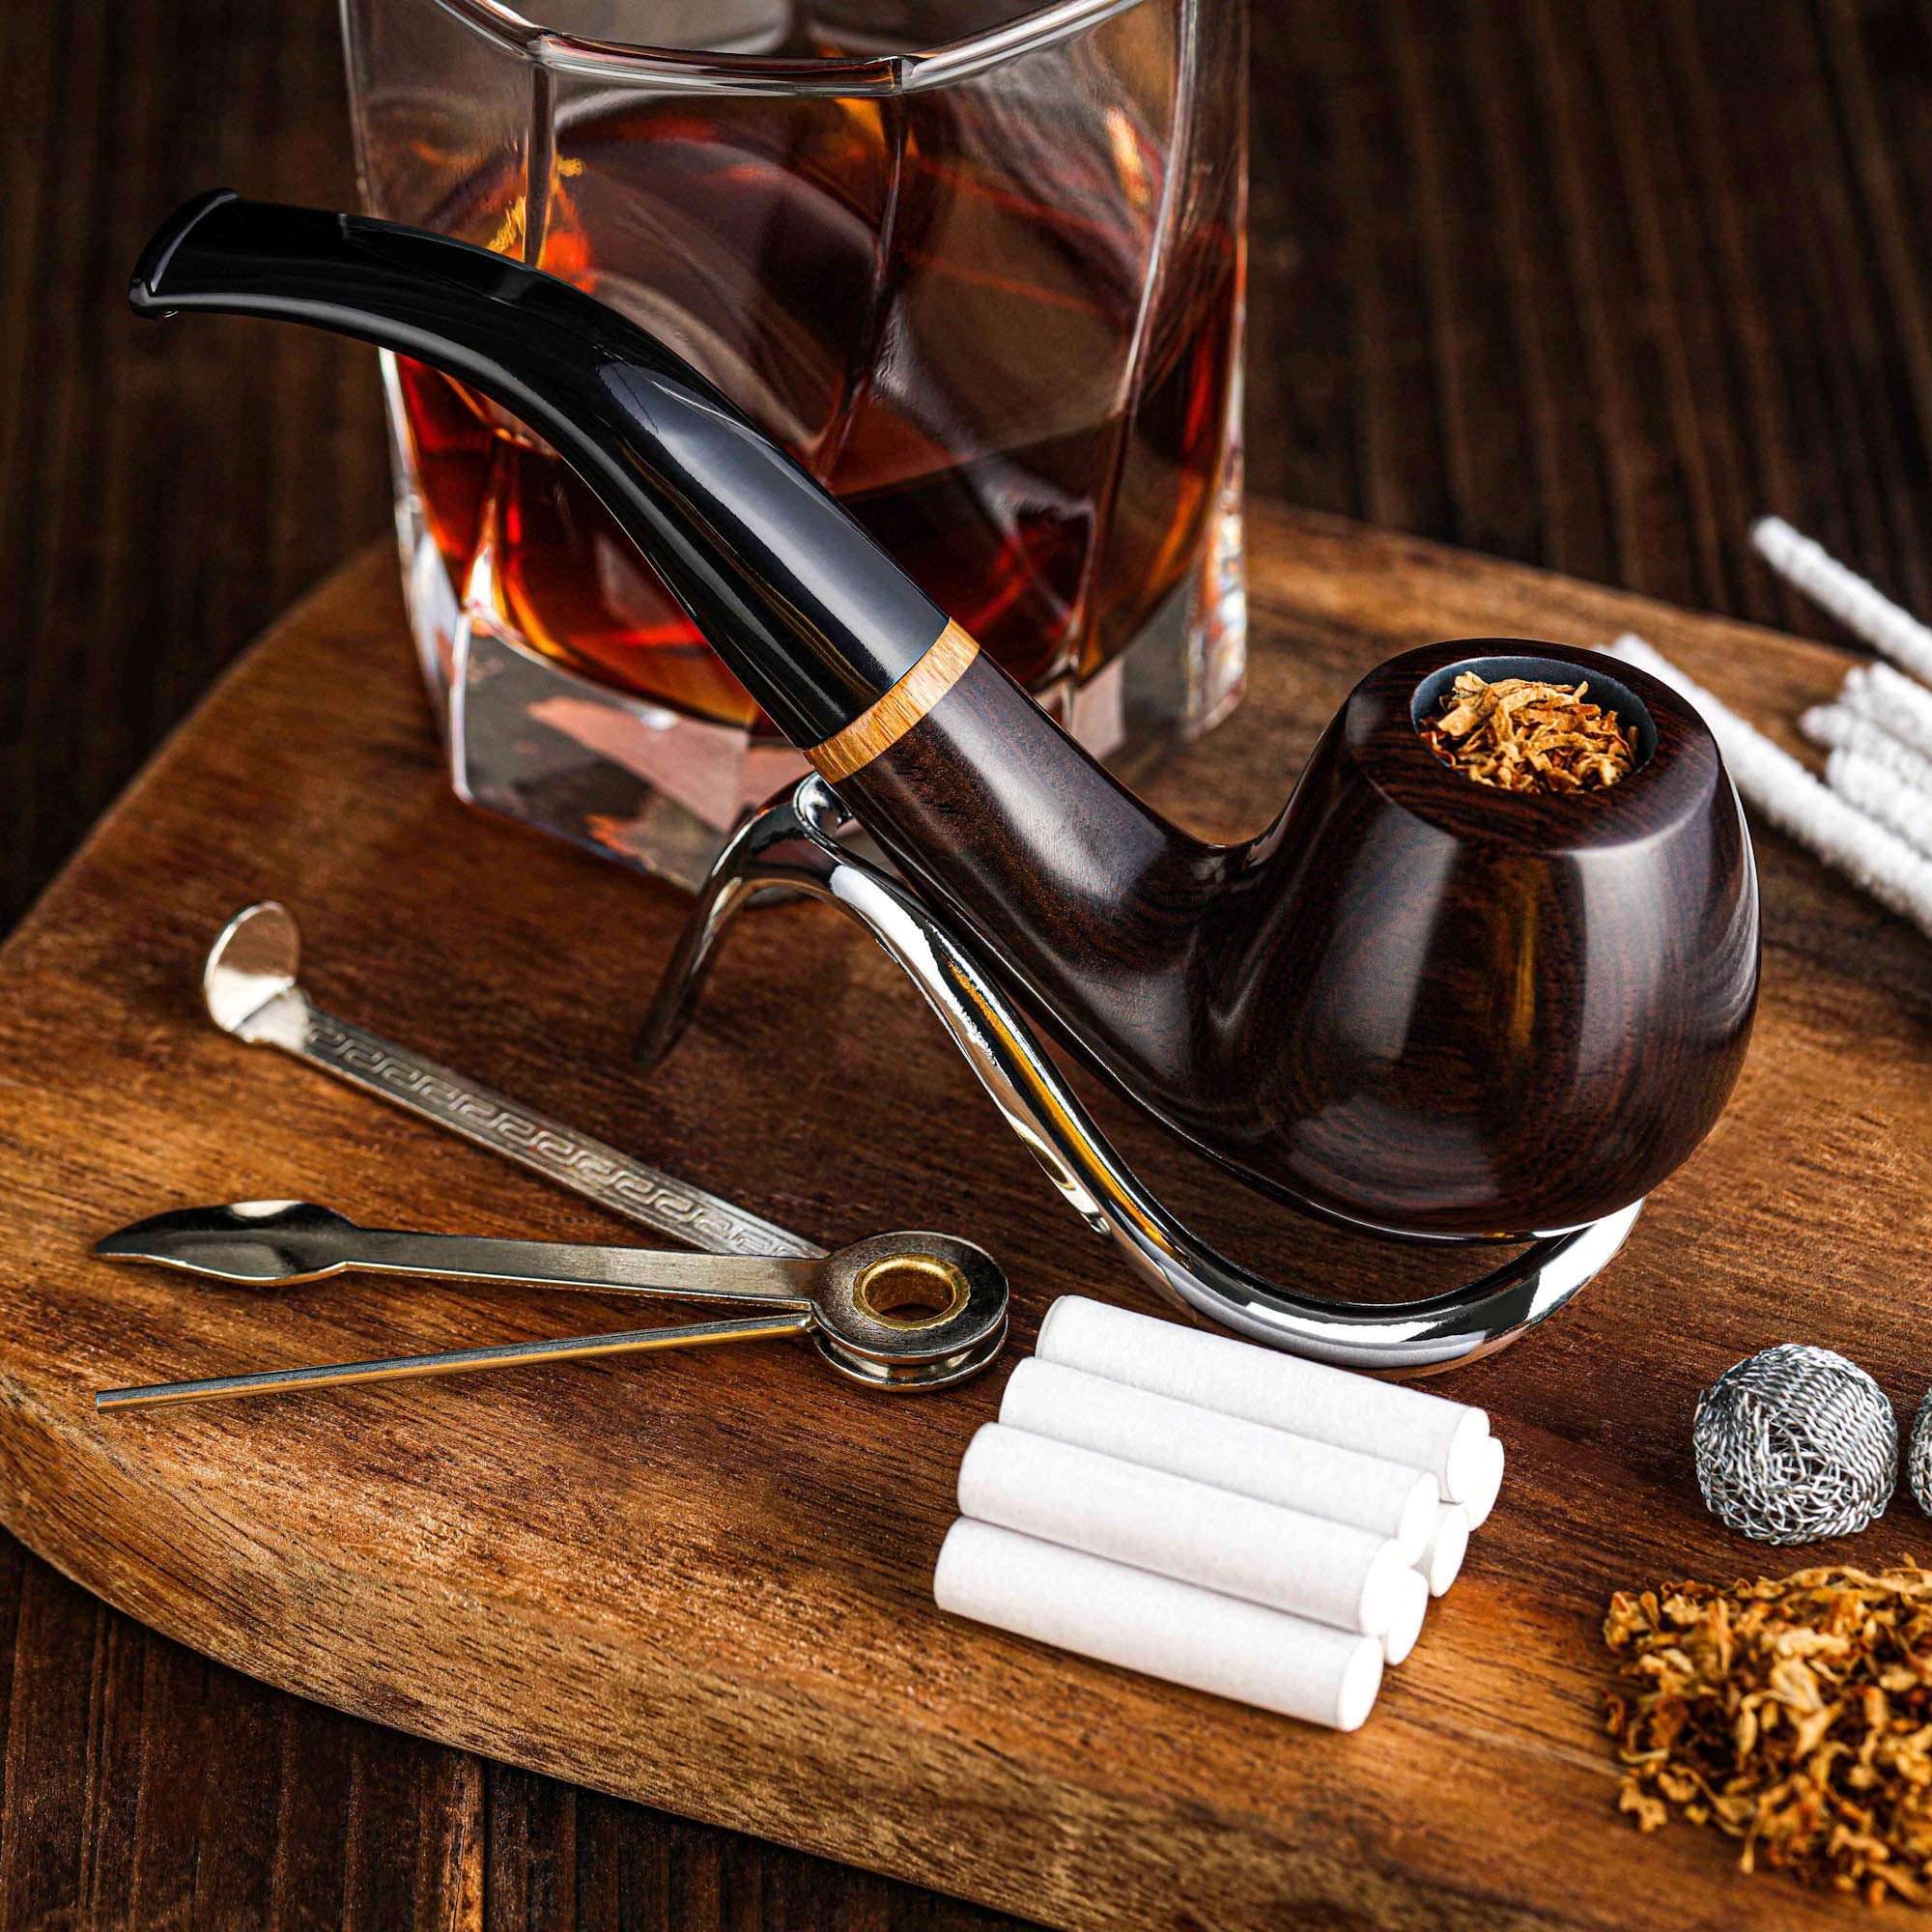 Whitluck's Tobacco Pipe, Handmade Wood Smoking Pipe, Perfect Beginner Pipe Kit for Smoking with Ultimate Guide E-Book, Gift Set and Accessories (Sunny Yellow)